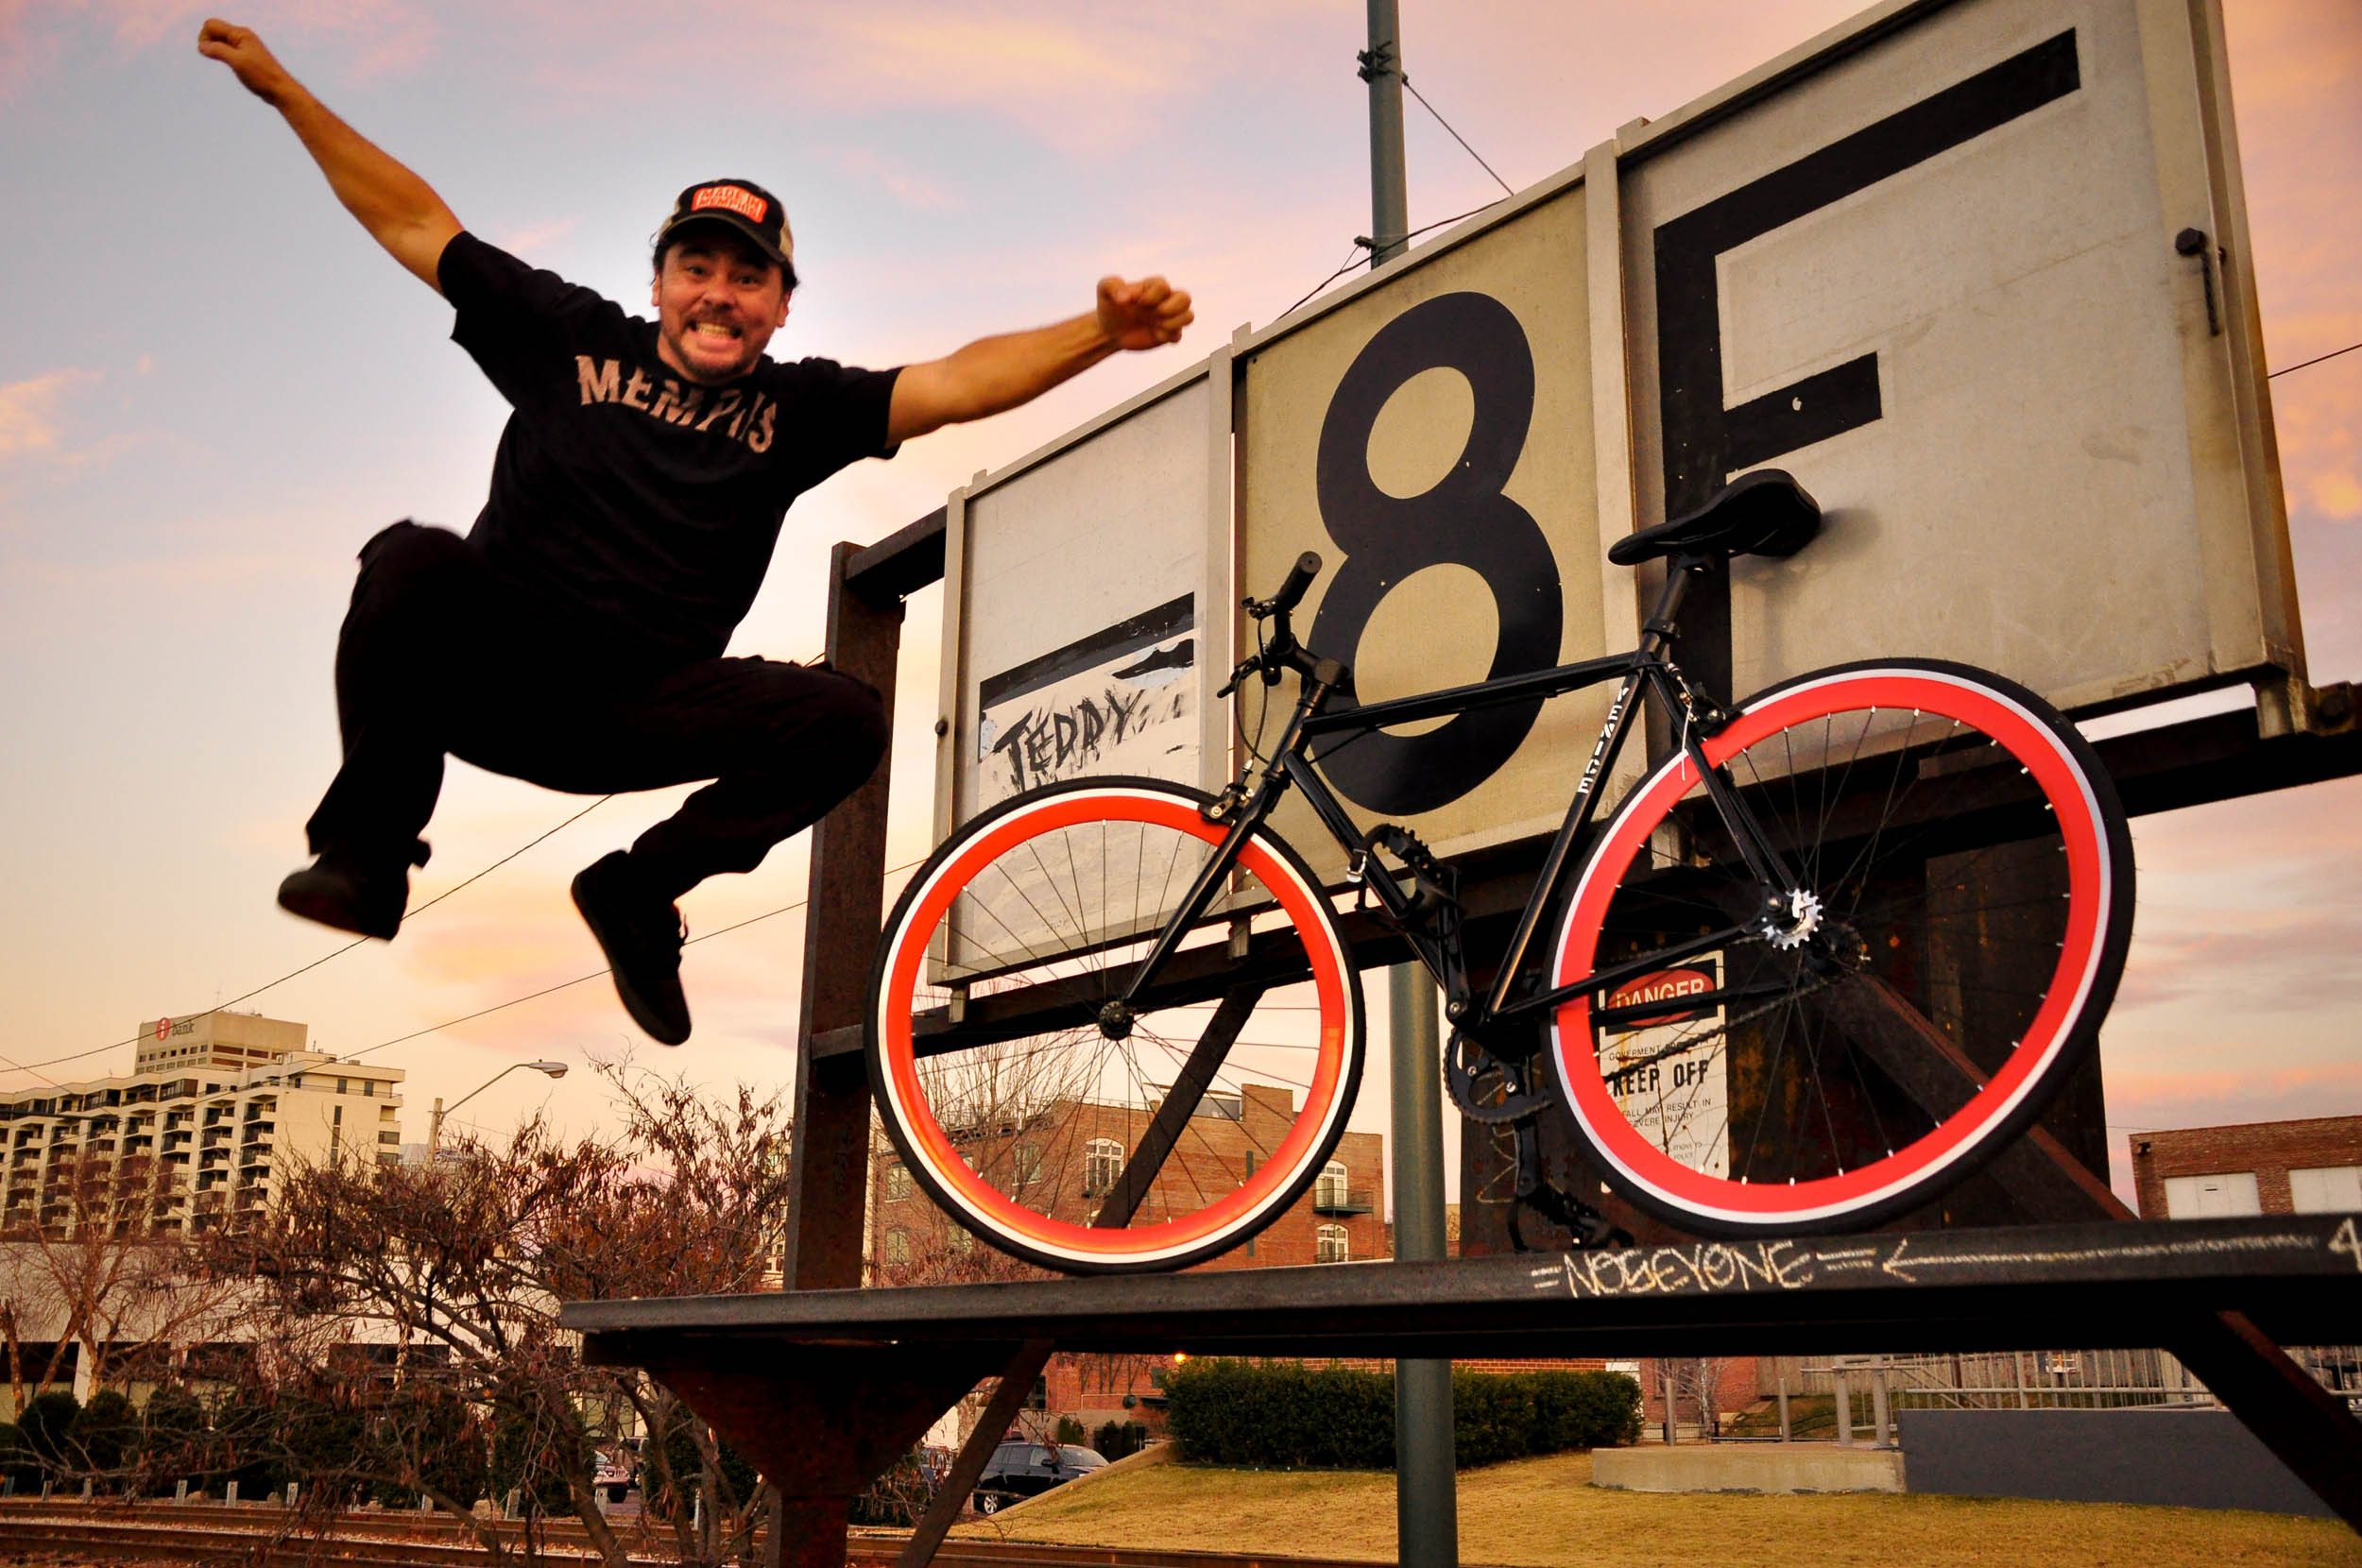 Venice Fixies in Memphis, TN by Christopher Reyes